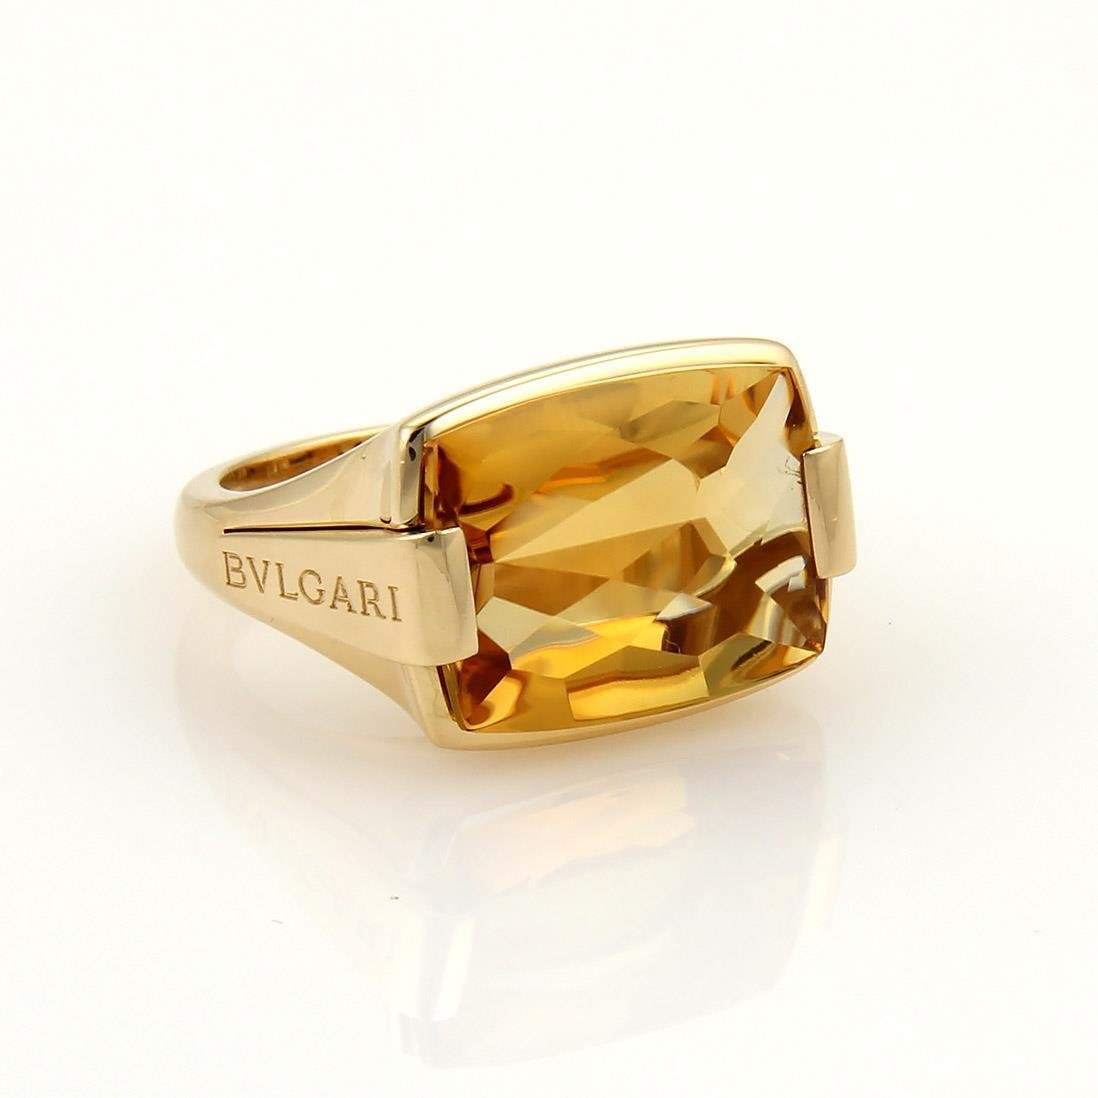 Bulgari Bvlgari Citrine 18k Yellow Gold Solitaire Ring